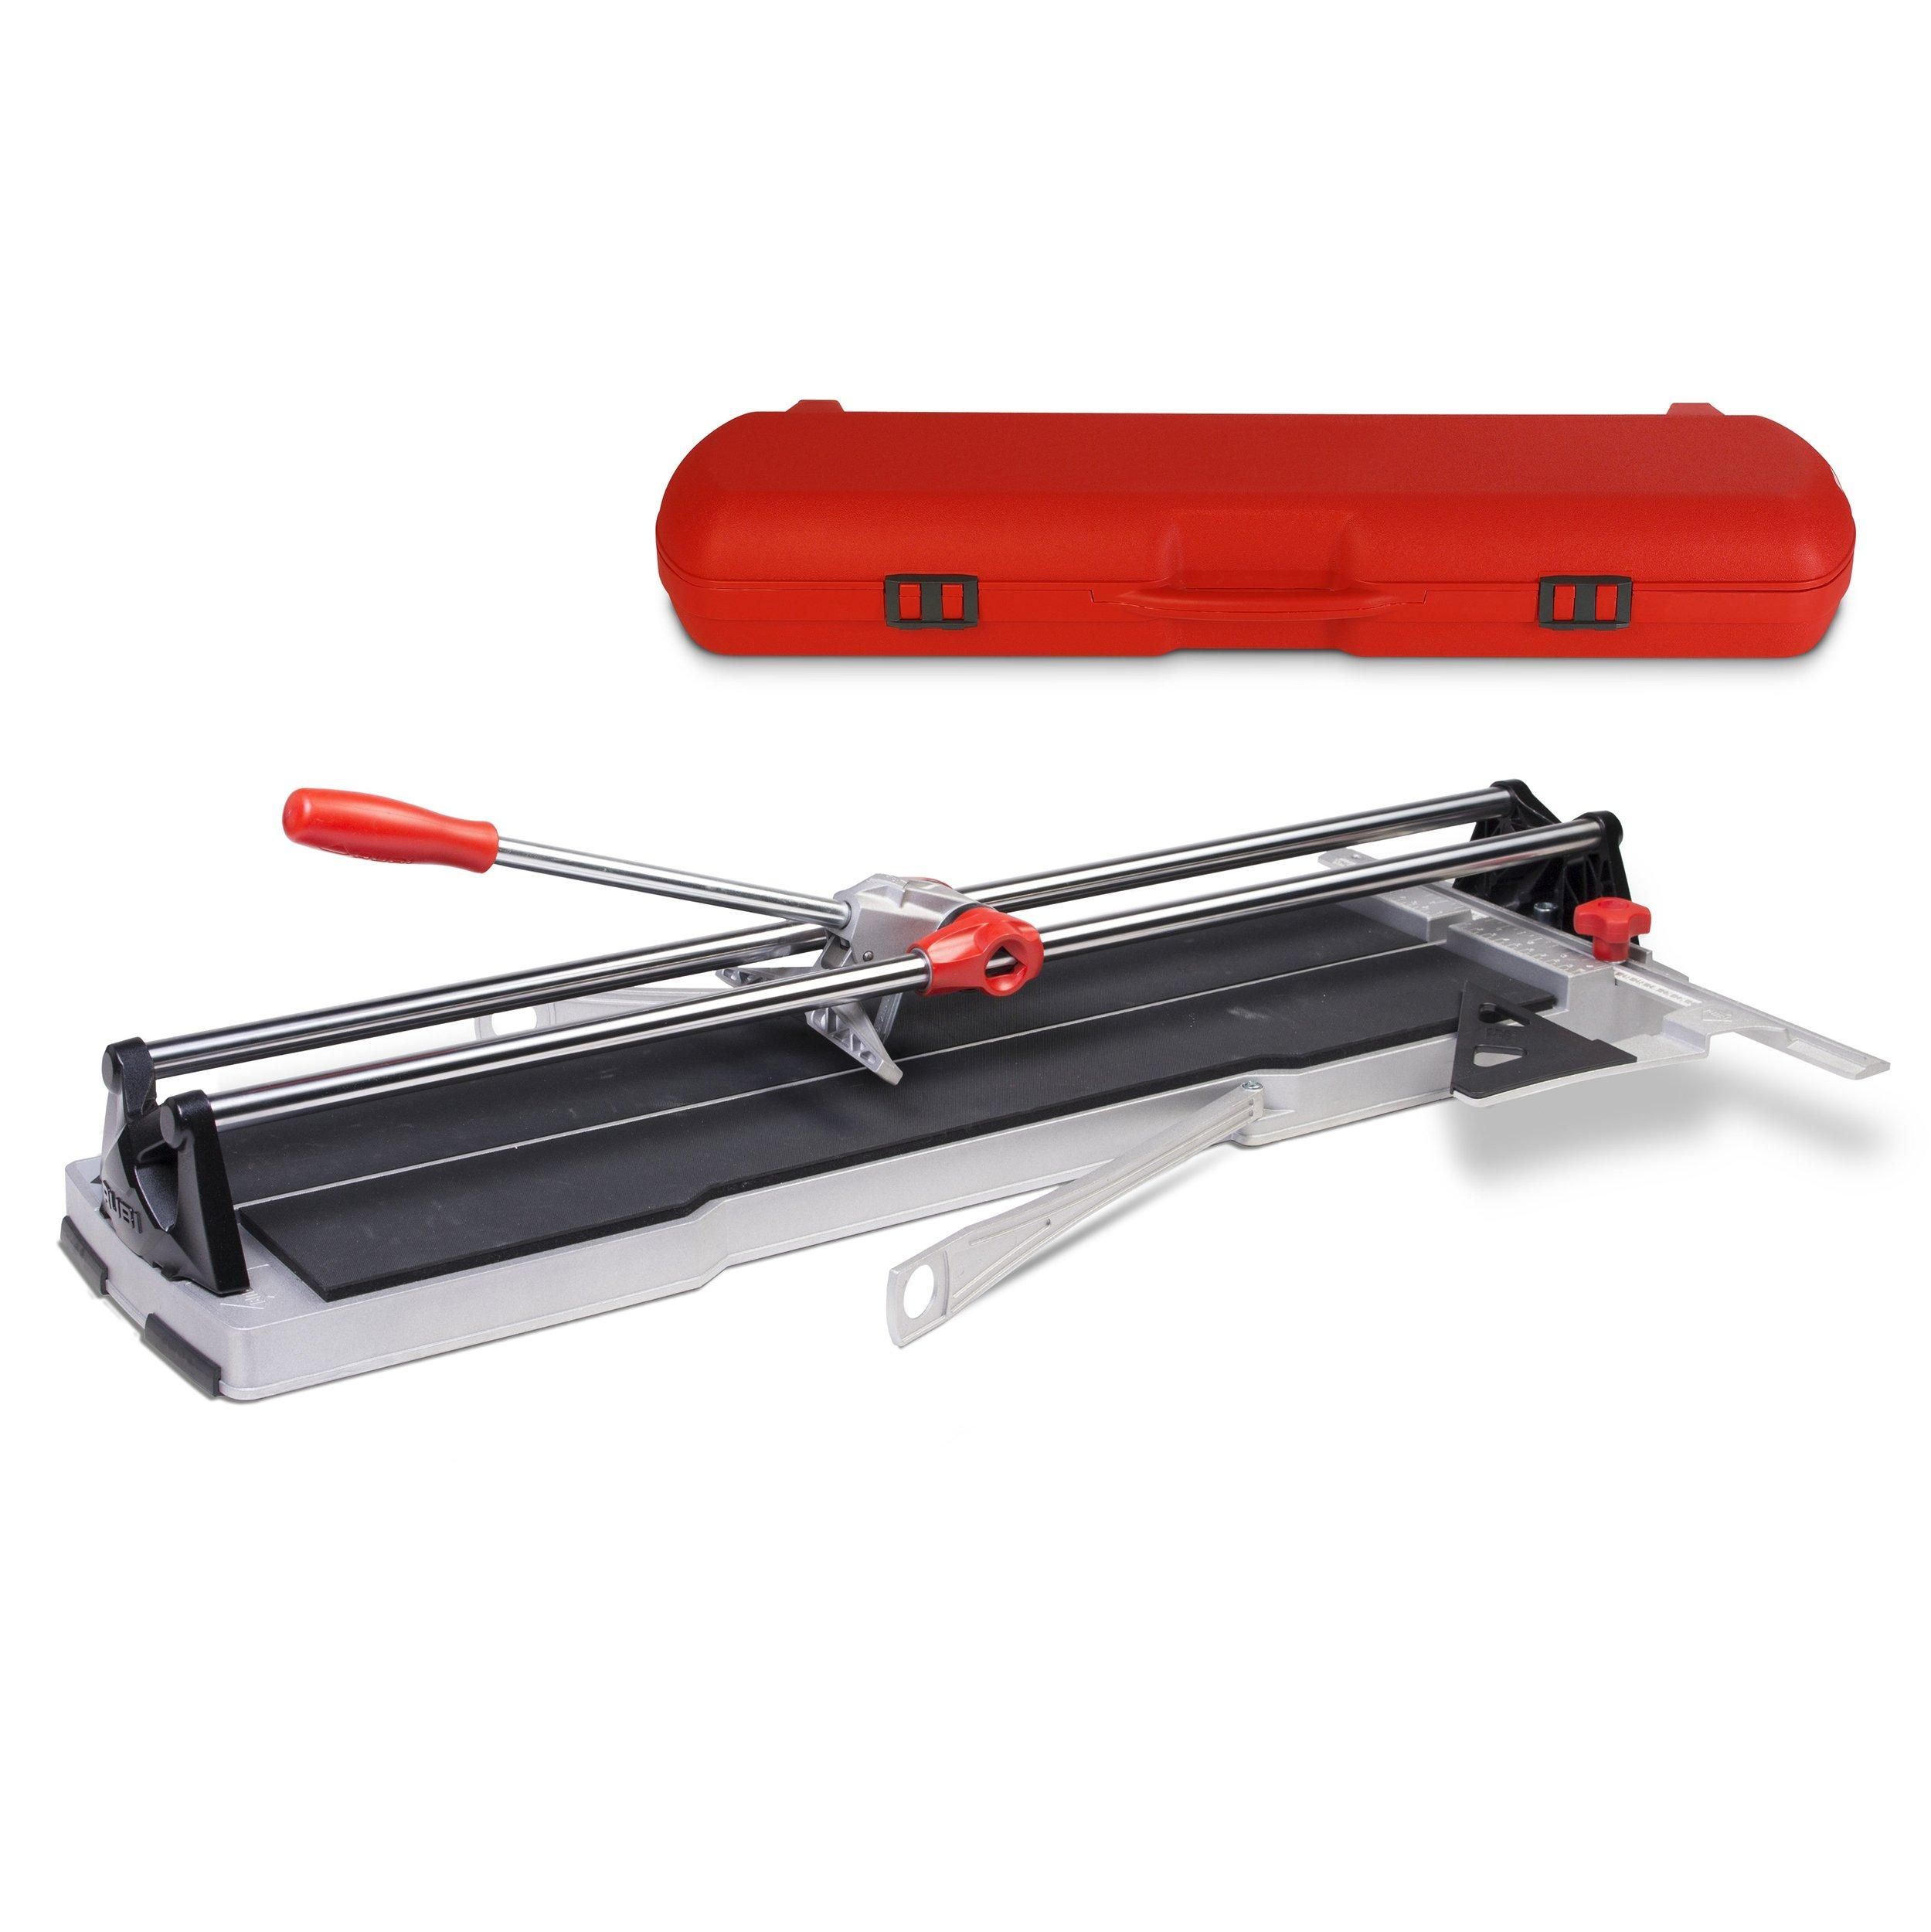 Rubi Speed 92 N Tile Cutter With Carrying Case Grey Floor Decor In 2020 Tile Cutter Types Of Ceramics Flooring Tools